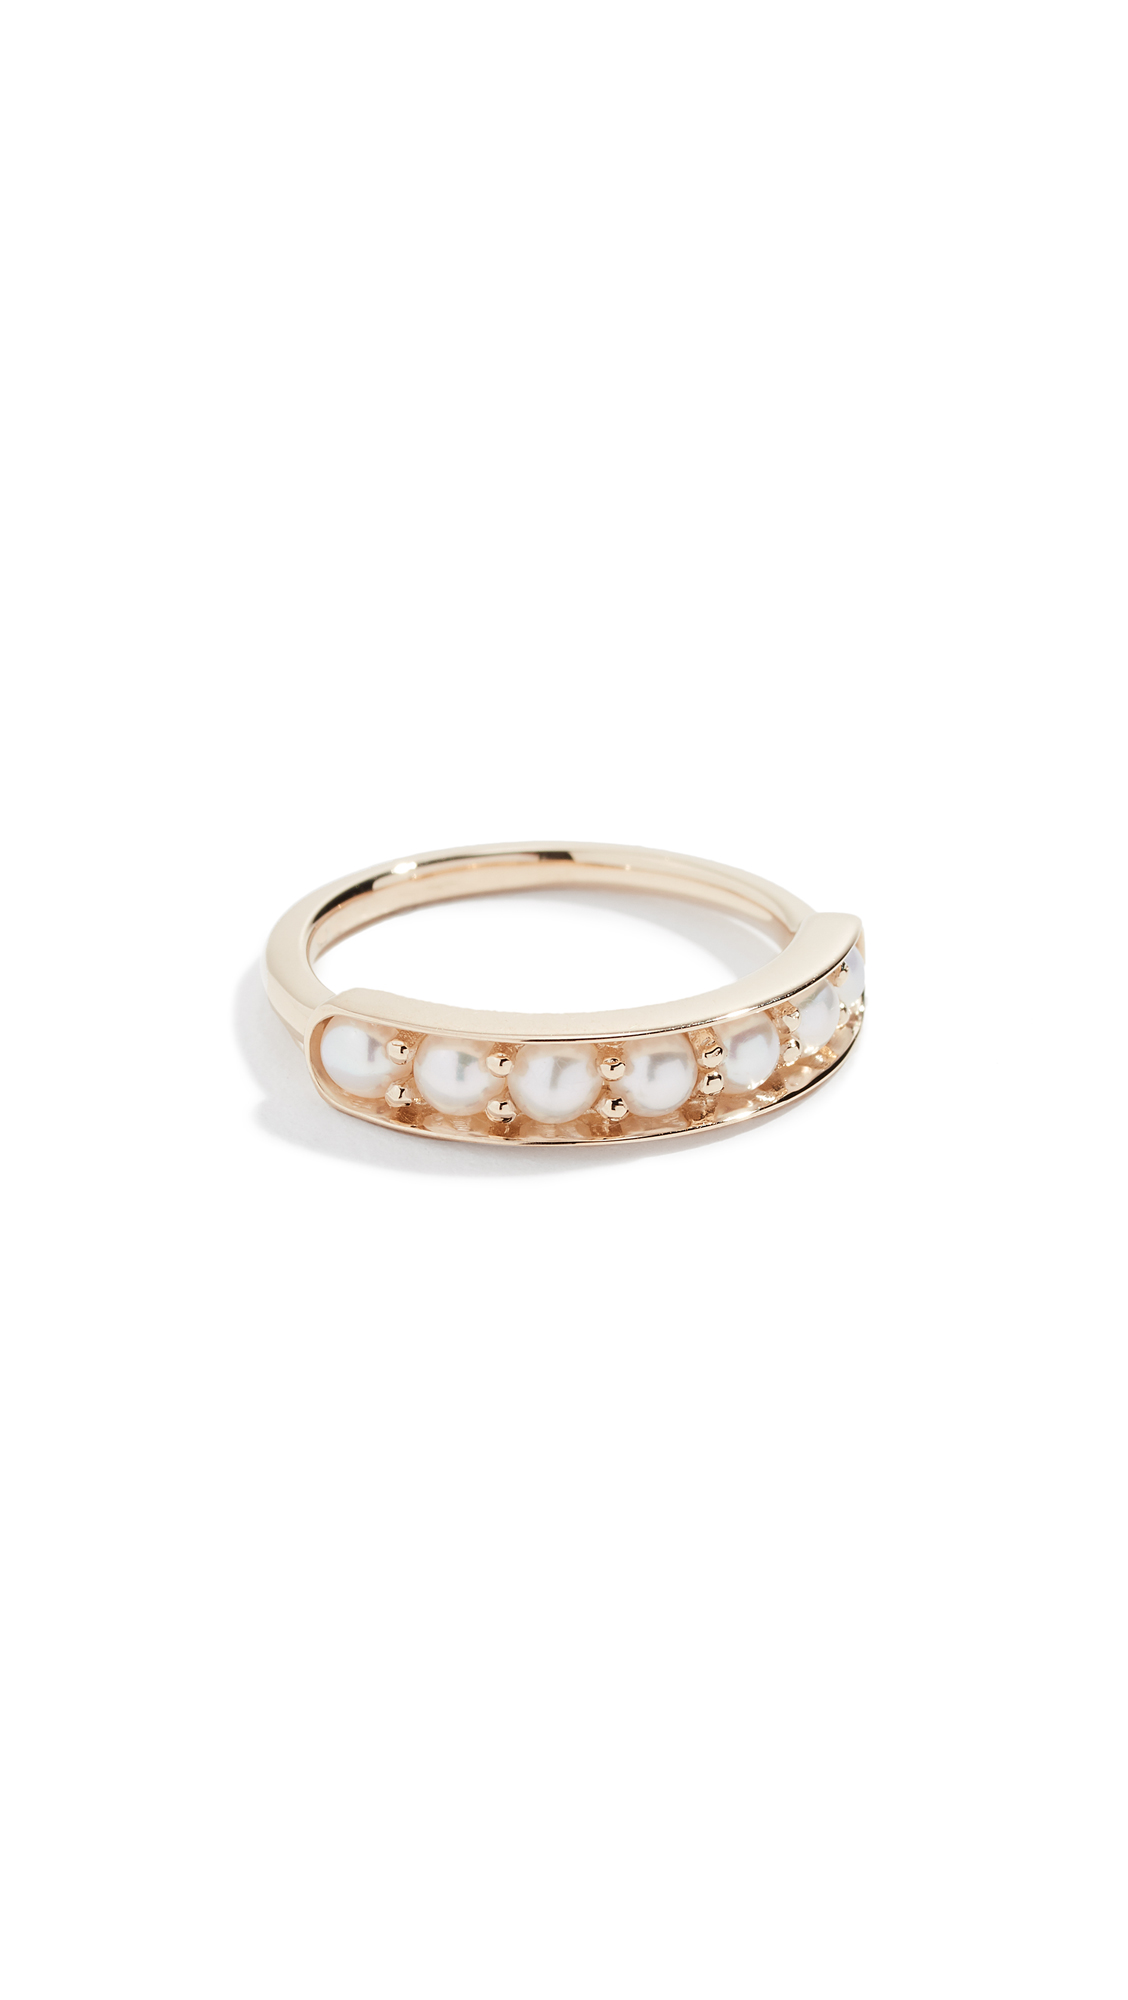 JANE TAYLOR 14K Half Eternity Band Ring in Pearl